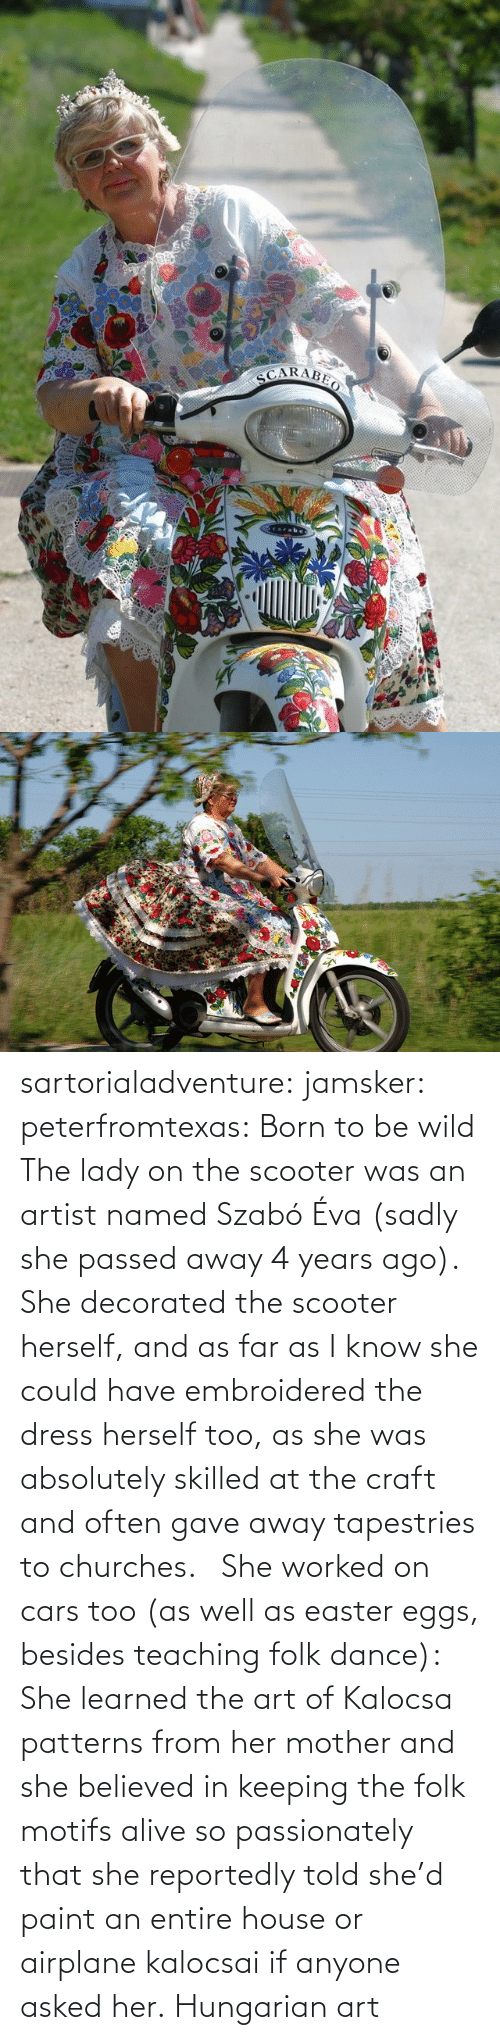 Patterns: sartorialadventure: jamsker:  peterfromtexas: Born to be wild The lady on the scooter was an artist named Szabó Éva (sadly she passed away 4 years ago). She decorated the scooter herself, and as far as I know she could have embroidered the dress herself too, as she was absolutely skilled at the craft and often gave away tapestries to churches.   She worked on cars too (as well as easter eggs, besides teaching folk dance): She learned the art of Kalocsa patterns from her mother and she believed in keeping the folk motifs alive so passionately that she reportedly told she'd paint an entire house or airplane kalocsai if anyone asked her.  Hungarian art